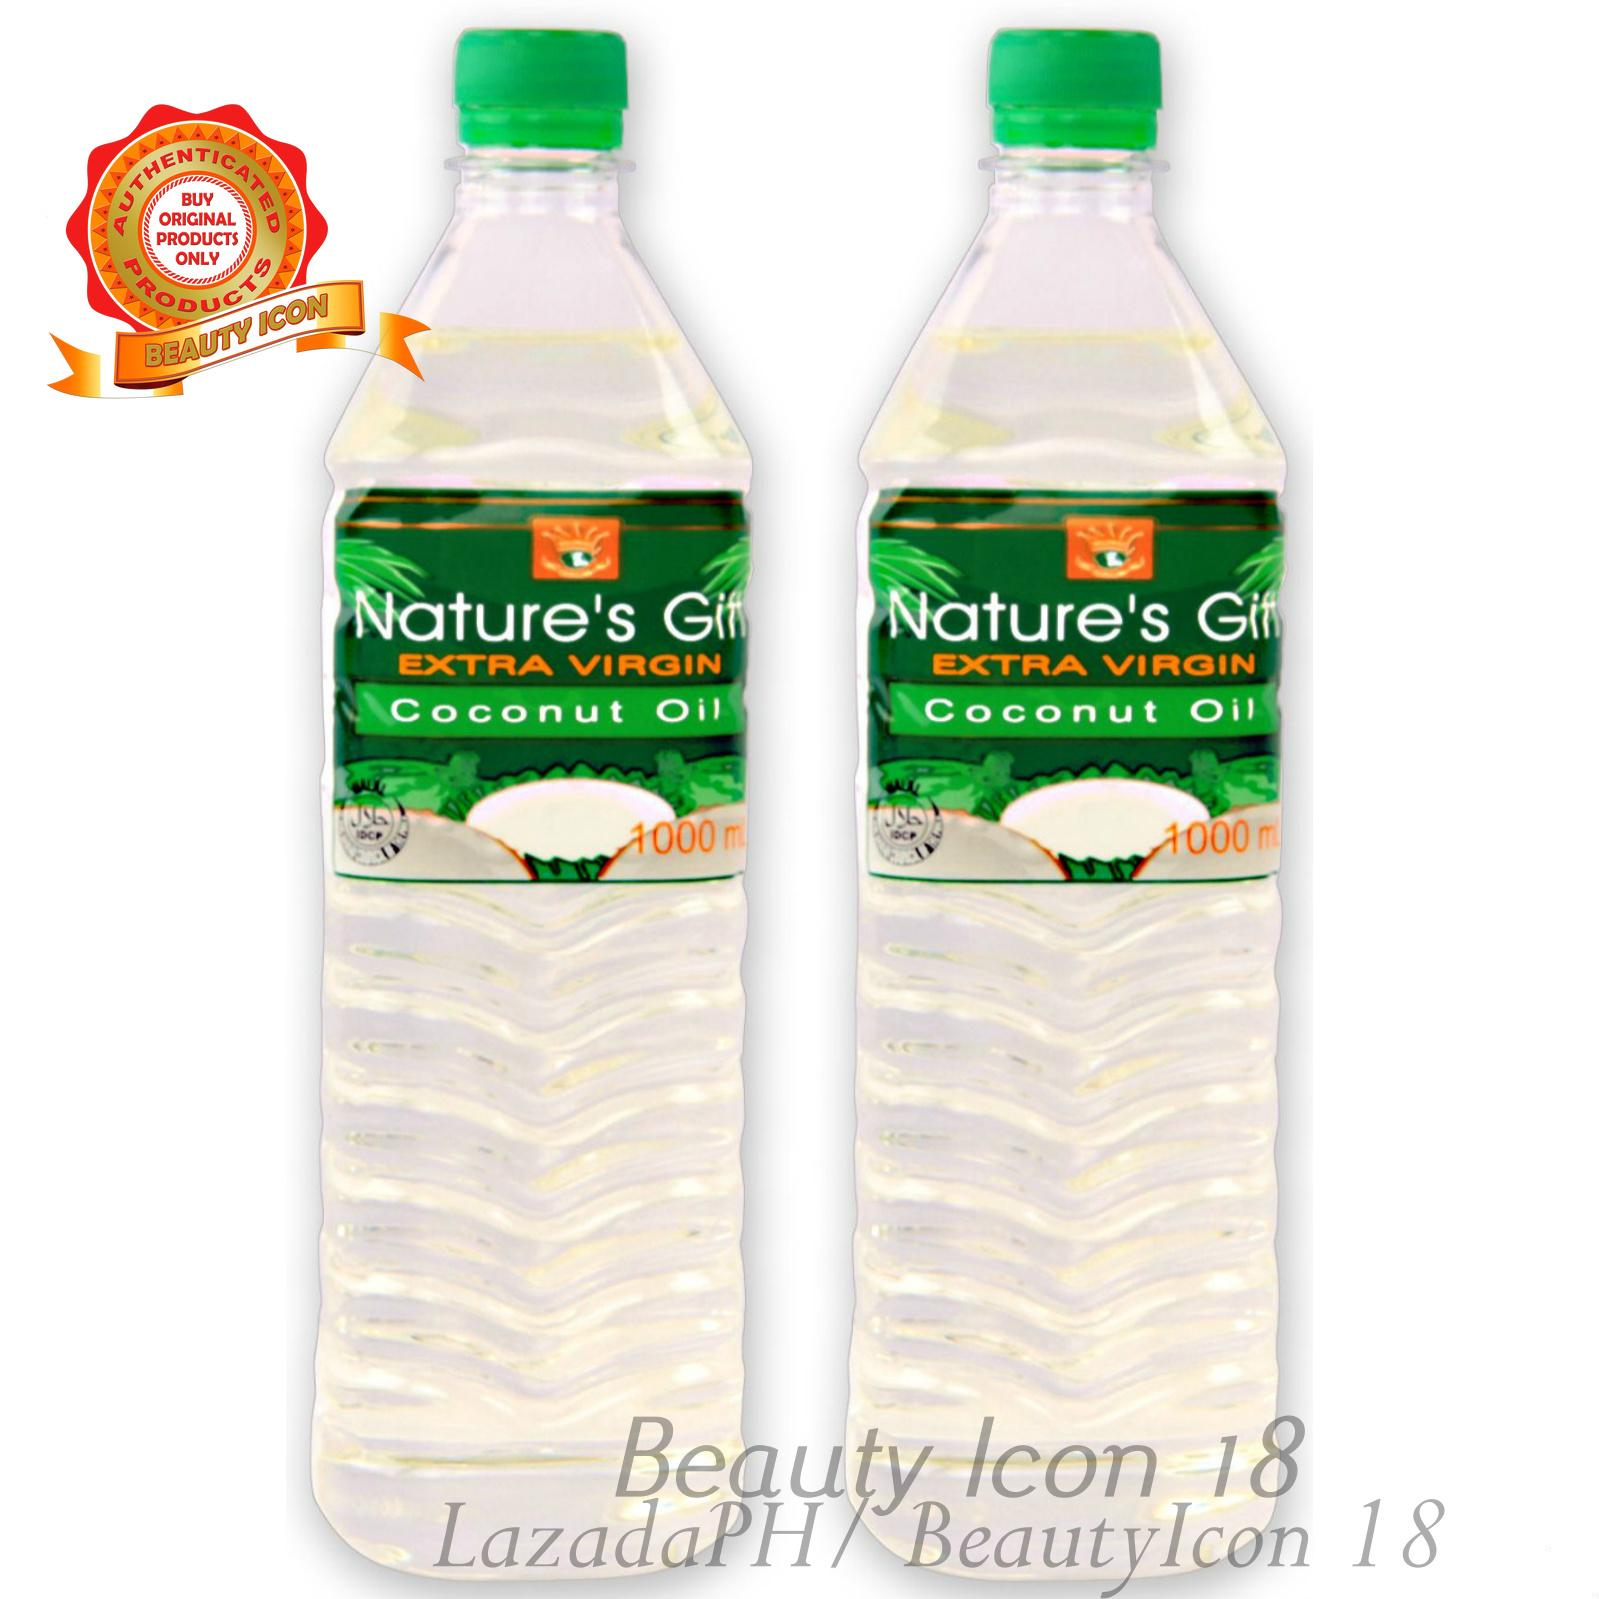 Cooking Oil Brands Frying On Sale Prices Set Reviews In Virgin Coconut 125 Ml Natures Gift Extra 1000ml Of 2s